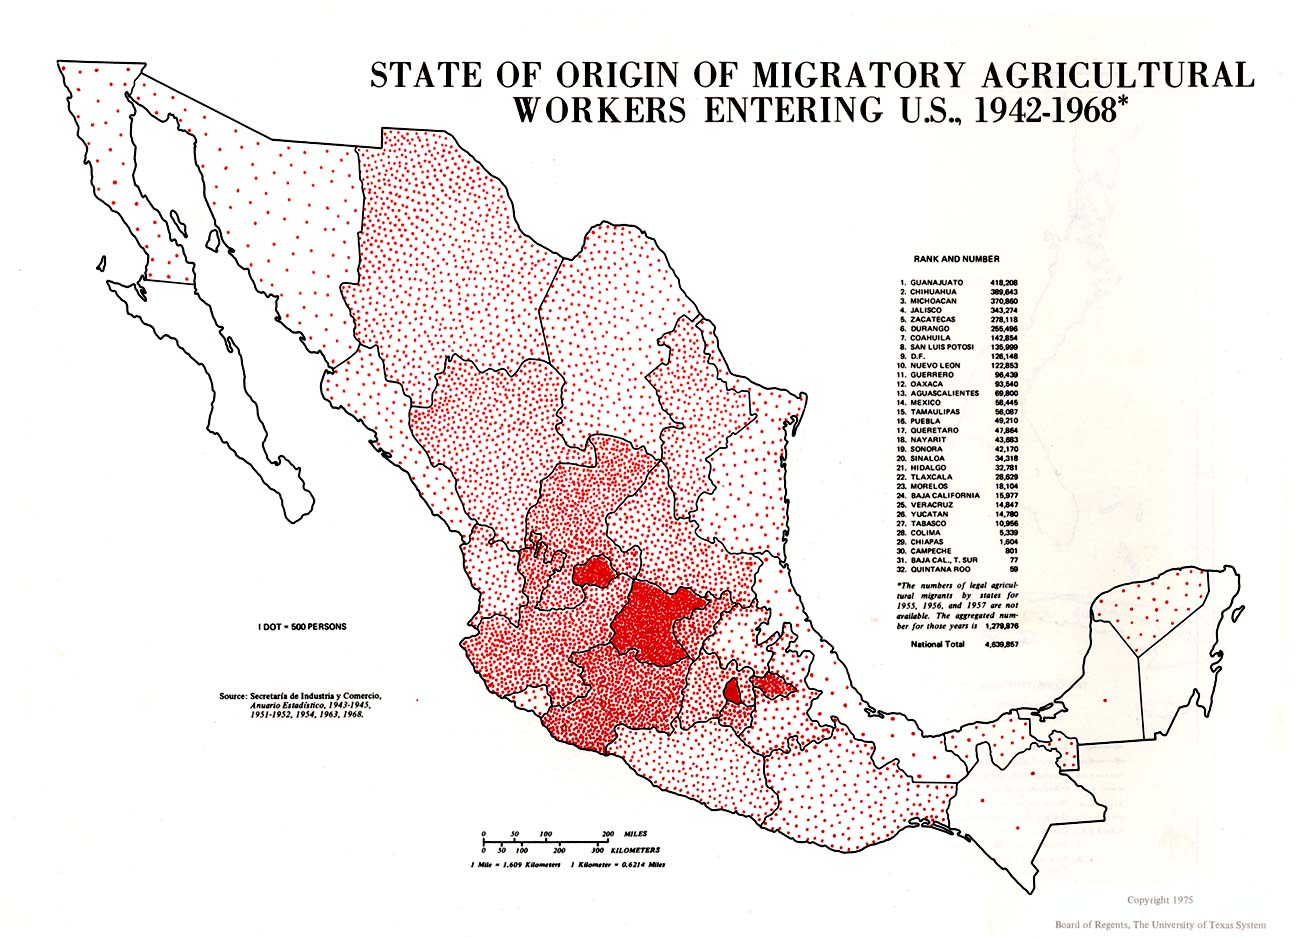 Map of Migratory Agricultural Workers Entering U.S. per State of Origin, Mexico 1942 - 1968